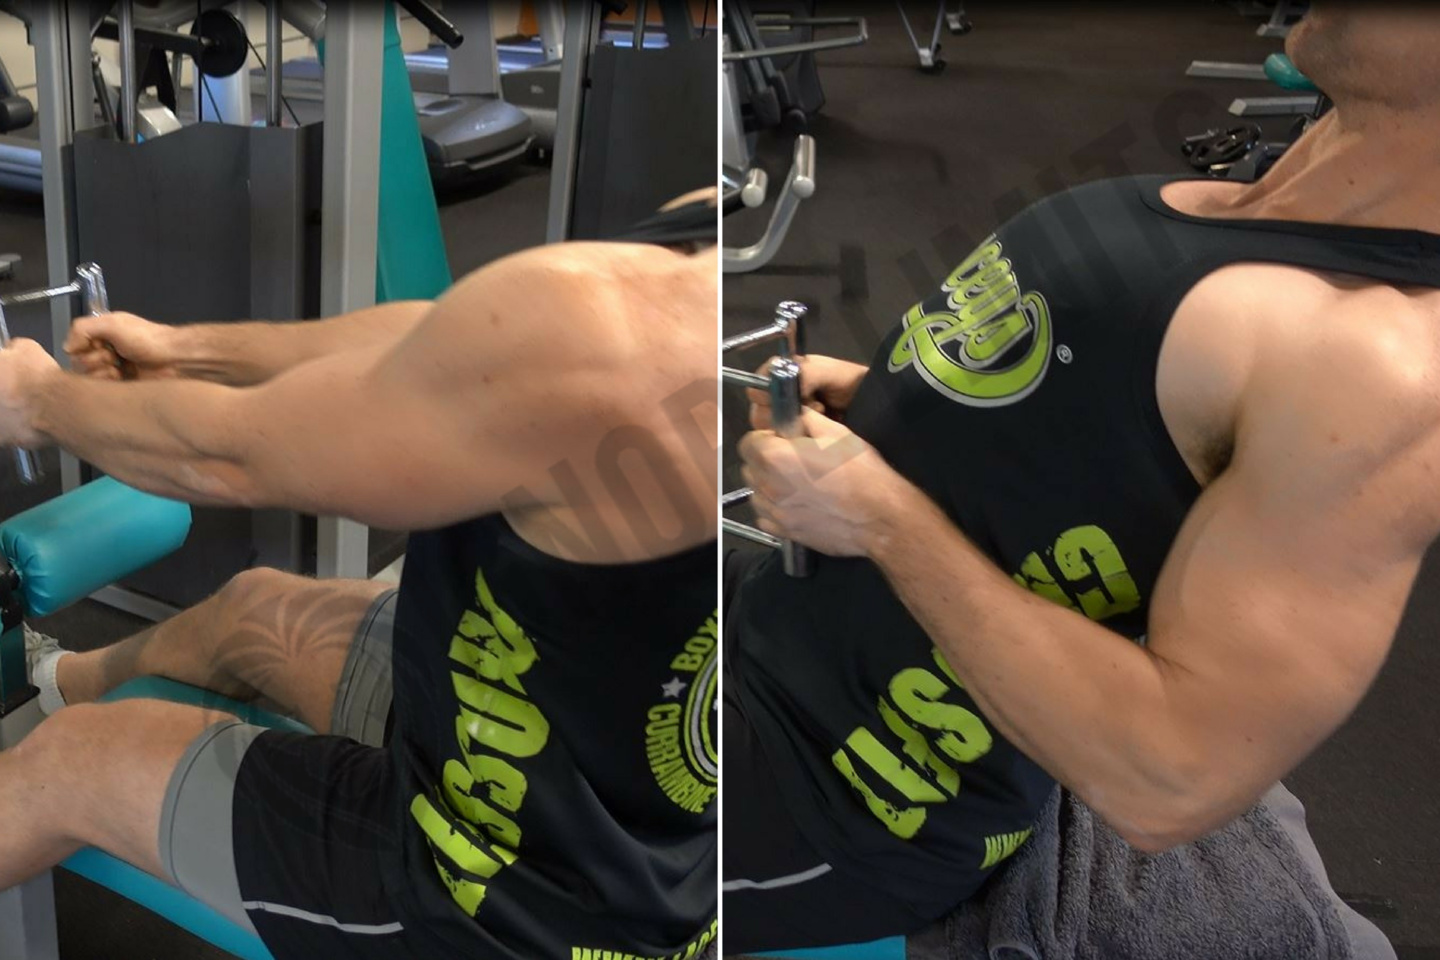 How To: Seated Cable Row - Ignore Limits